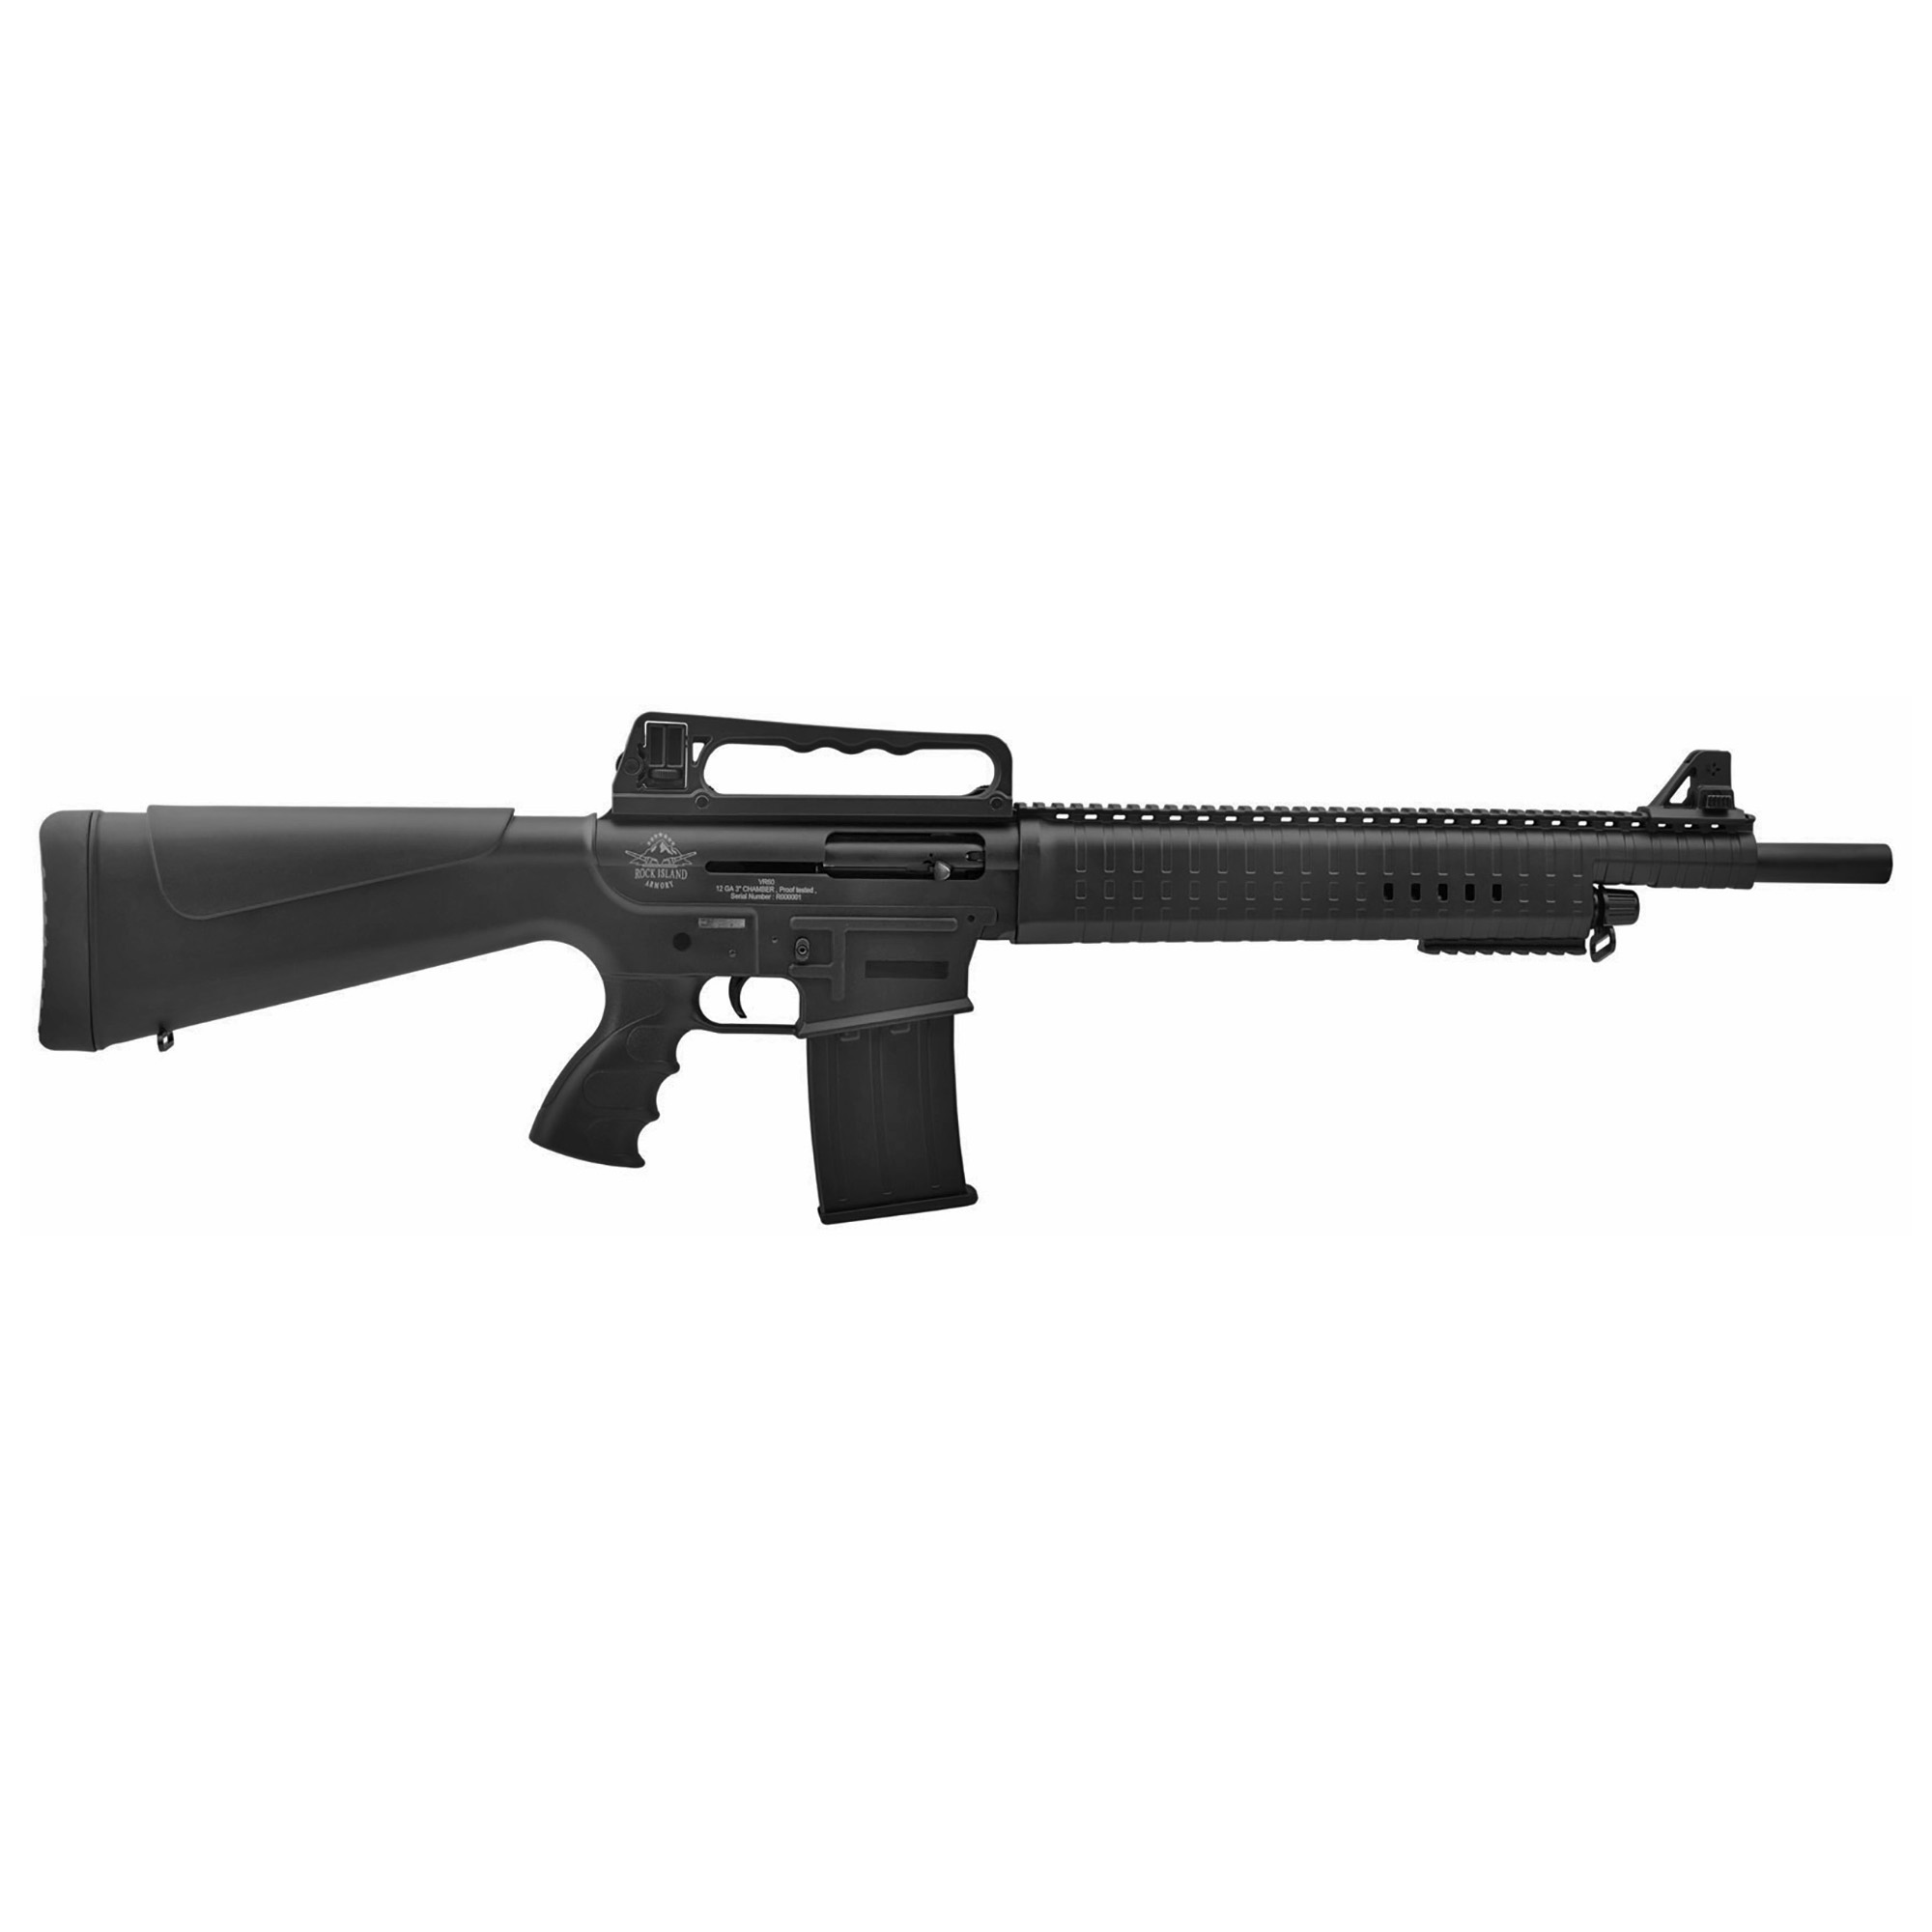 The ultimate design and features of an AR semi-automatic shotgun using a conventional gas-operated action which is located around the support tube that runs below the barrel. The return spring is also located around the same support tube which is concealed by an enlarged polymer handguard.